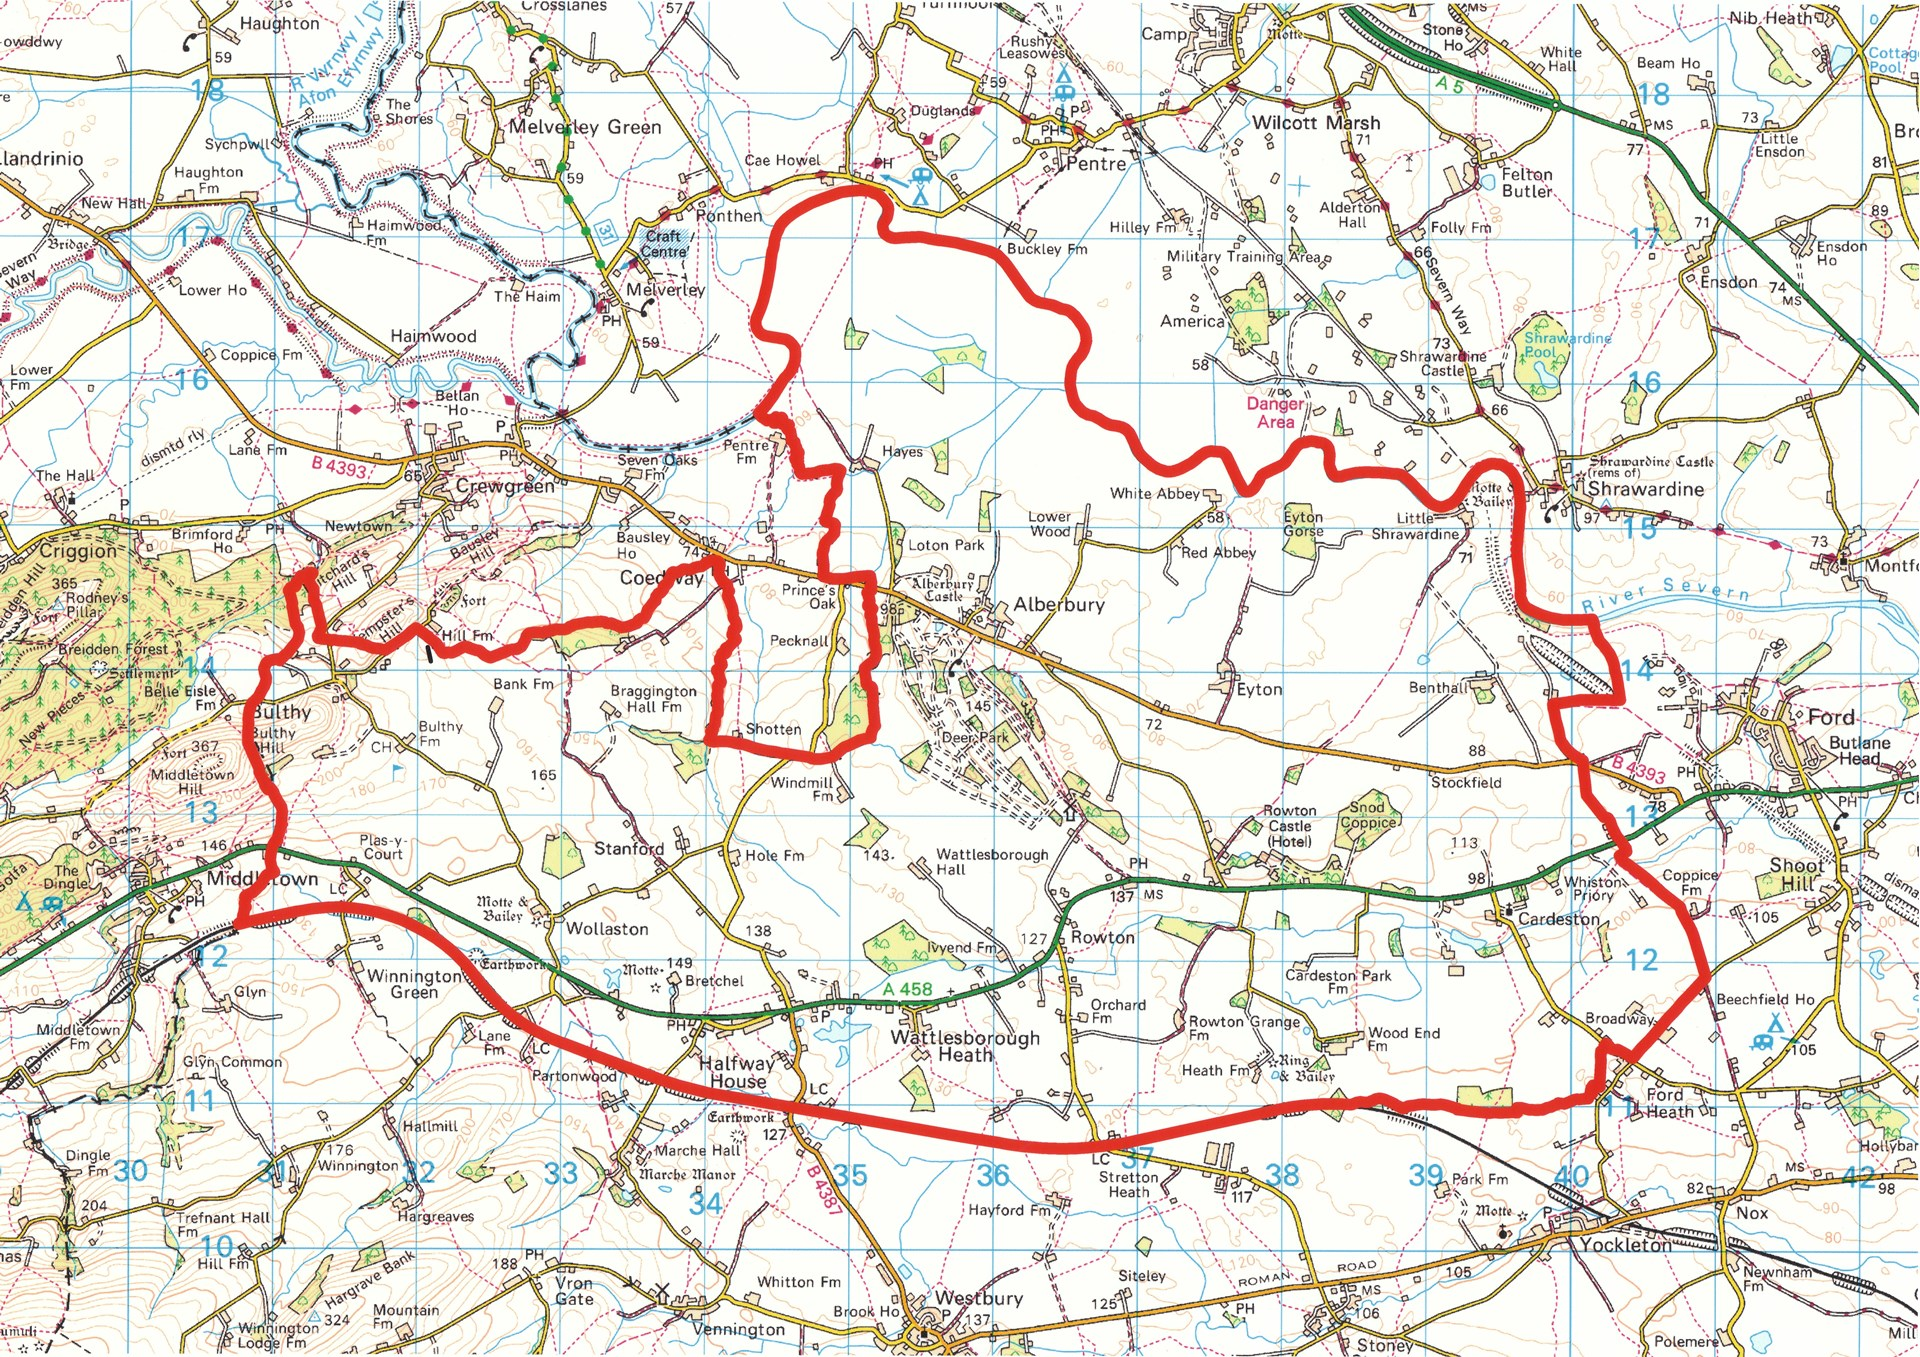 Alberbury with Cardeston Parish Map